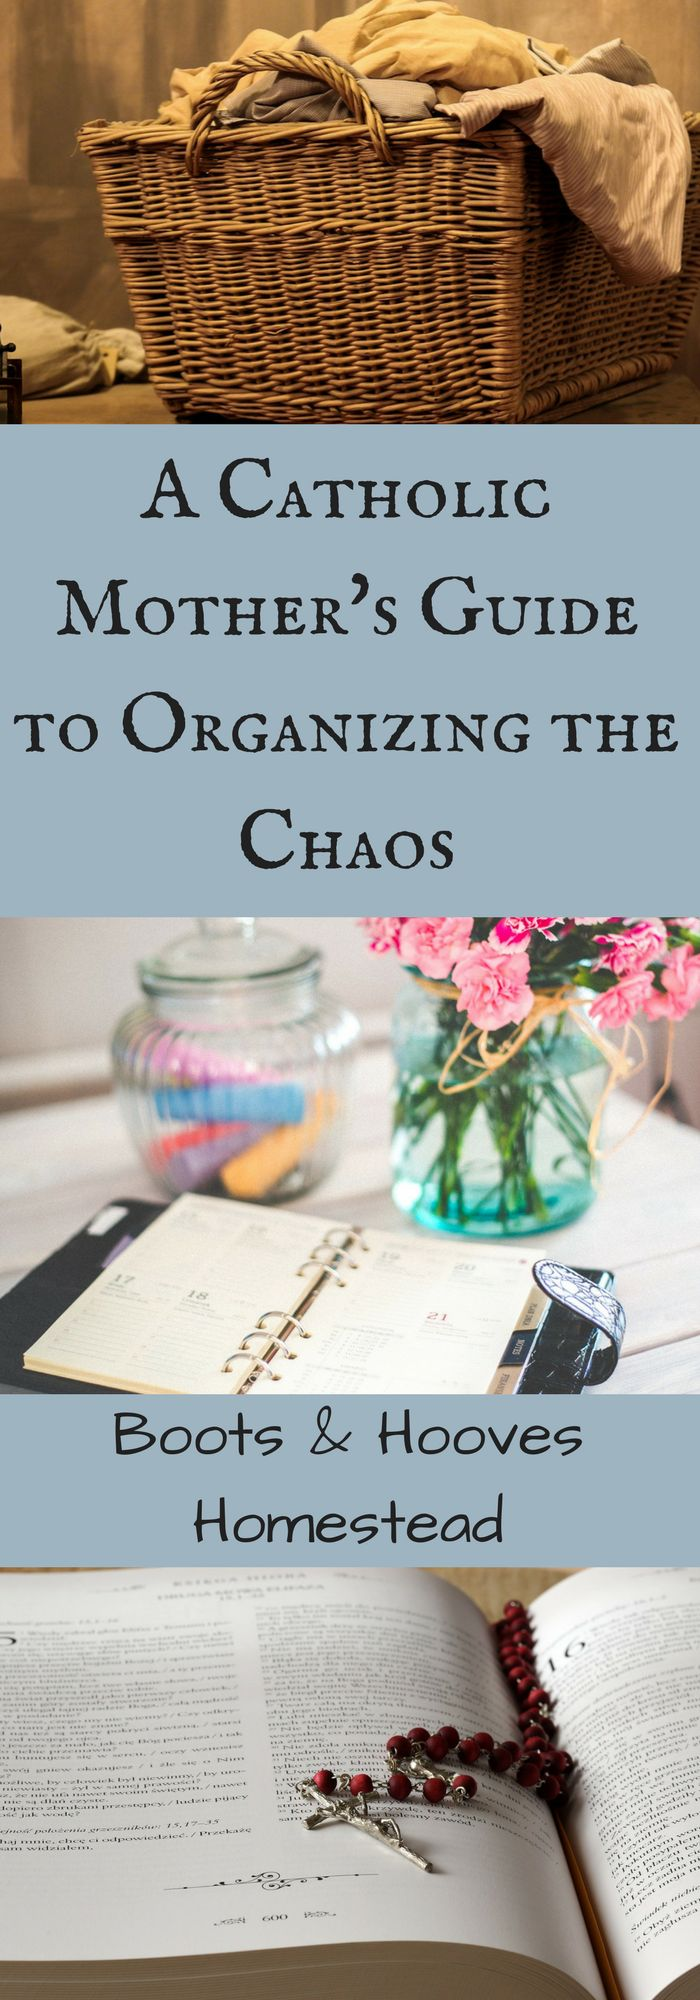 This post is about how I got myself together, how I organized my home to run smoothly. How I organized the chaos. As a Catholic mother with little ones.